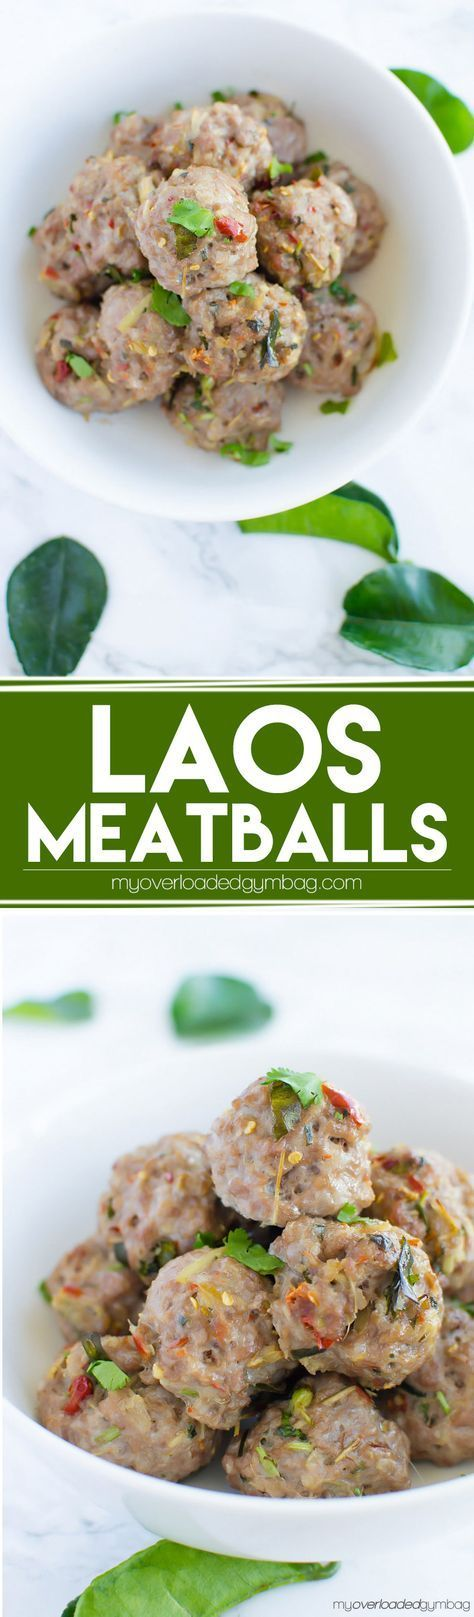 A low FODMAP recipe. An easy, exotic, no fuss Laotian meatball that sends your tastebuds on a South East Asian adventure! | myoverloadedgymbag.com